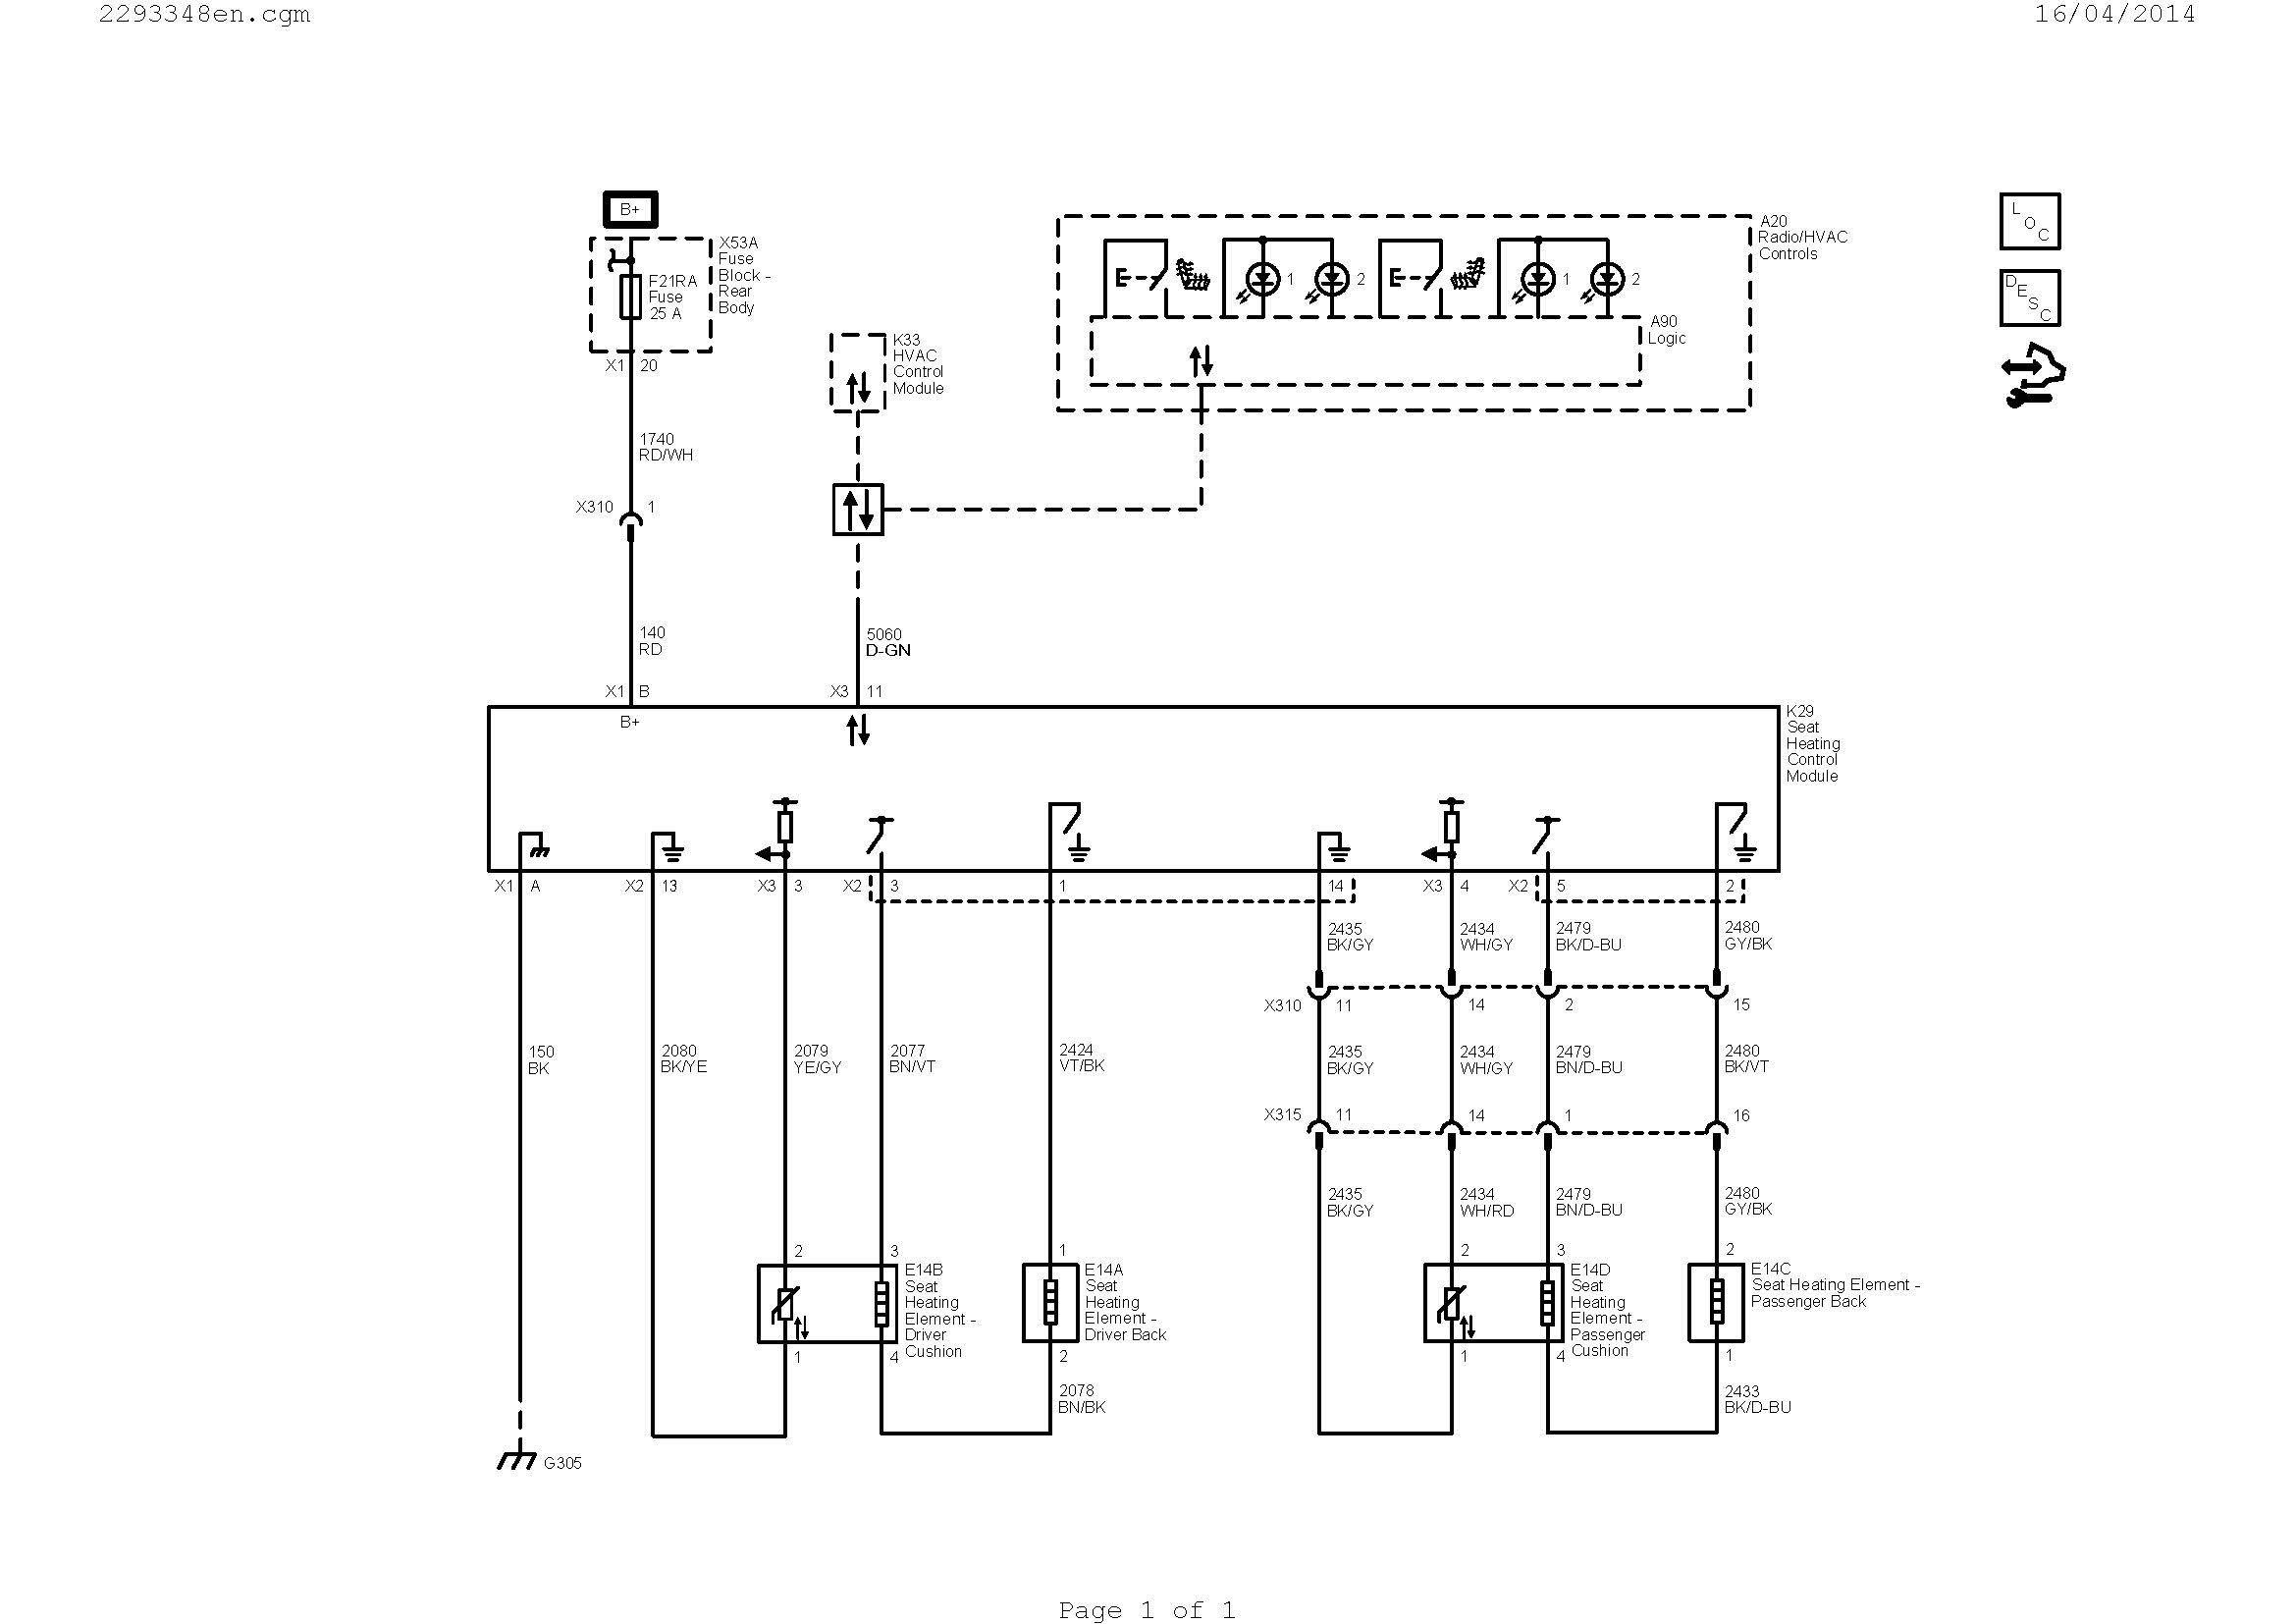 hvac transformer wiring diagram Collection-Wiring Diagram For Changeover Relay Inspirationa Wiring Diagram Ac Valid Hvac Diagram Best Hvac Diagram 0d – Wire 16-e